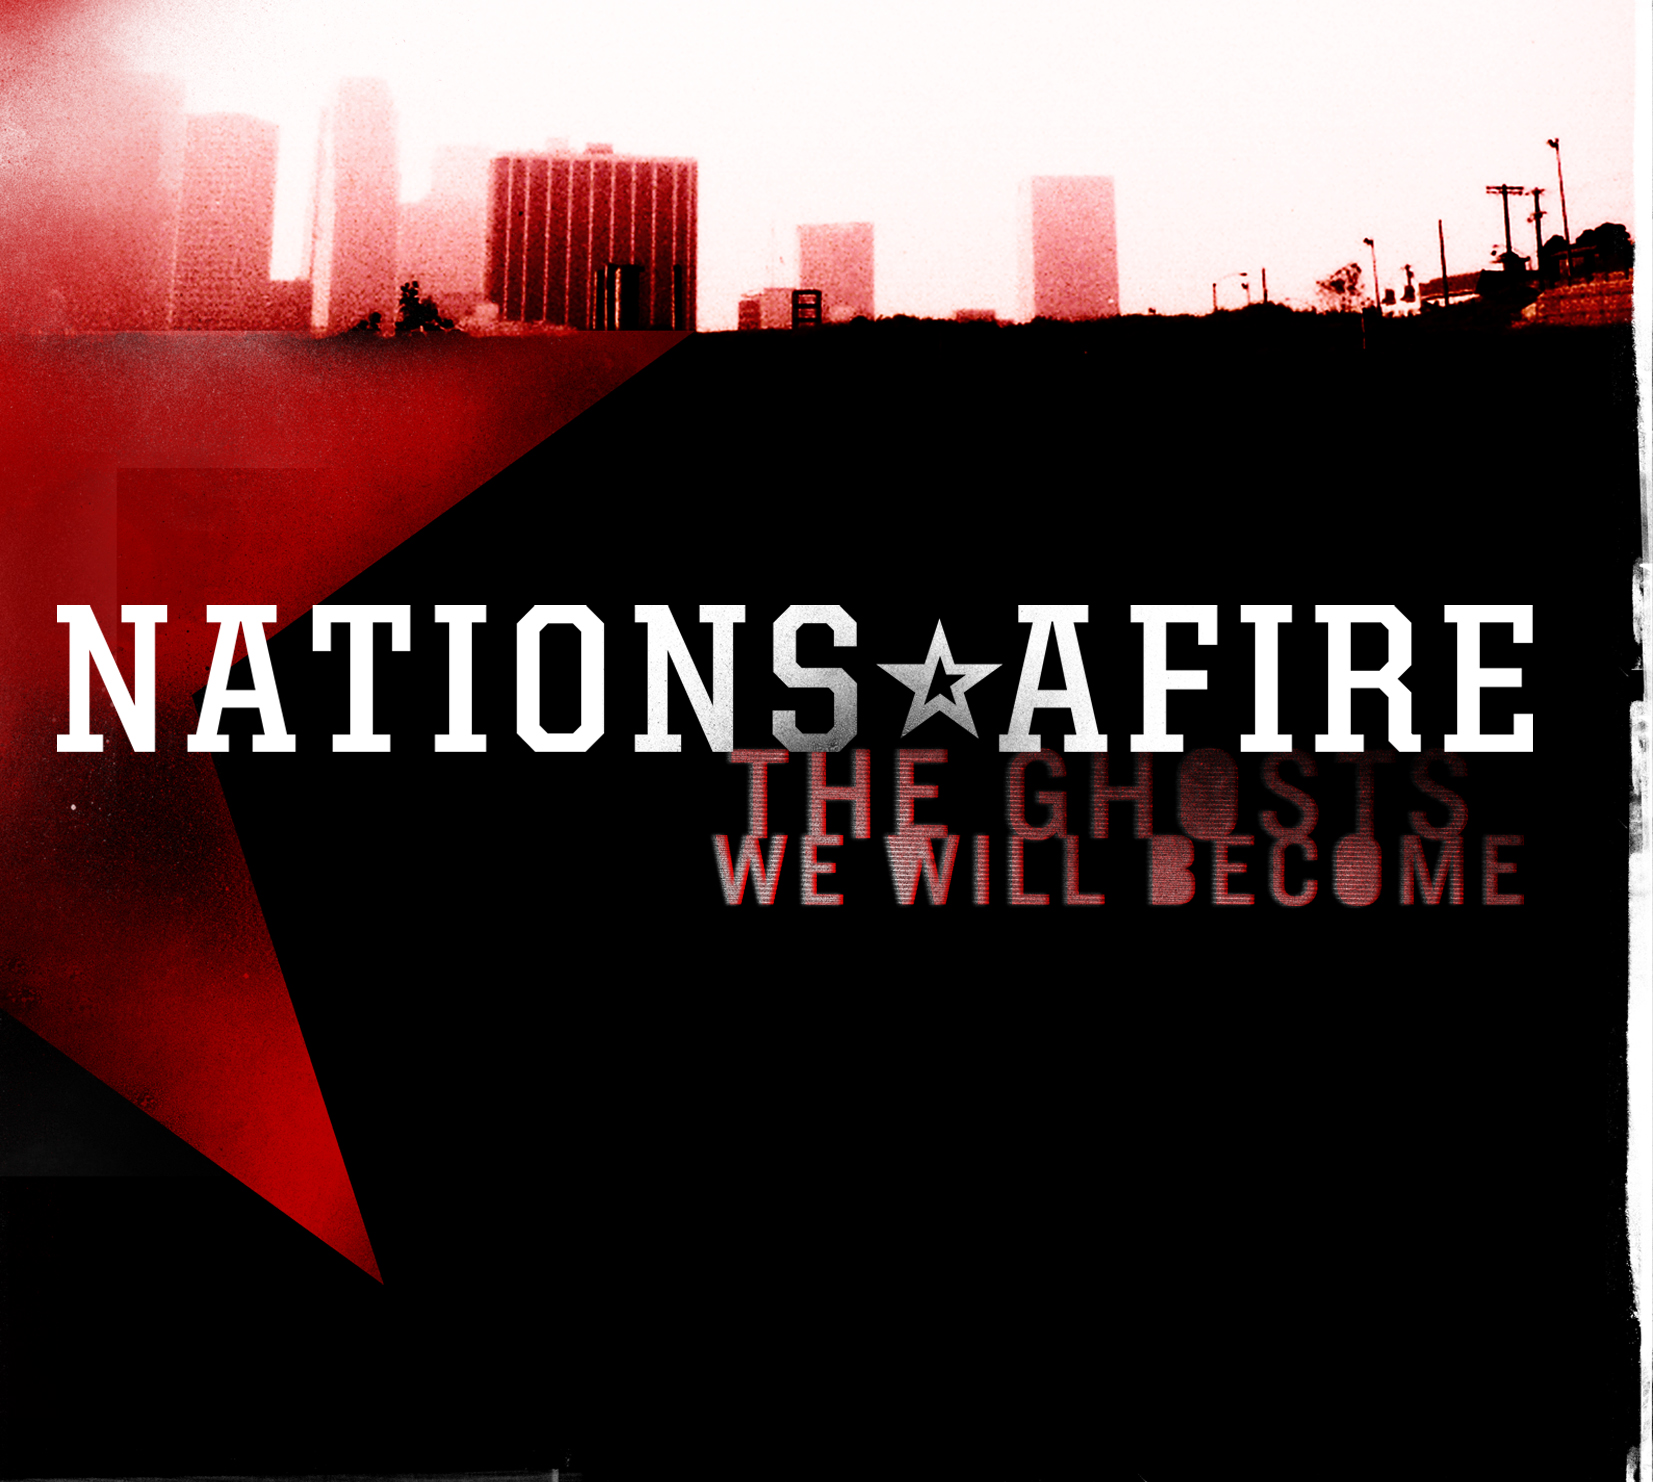 Nations Afire - The Ghost We Will Become